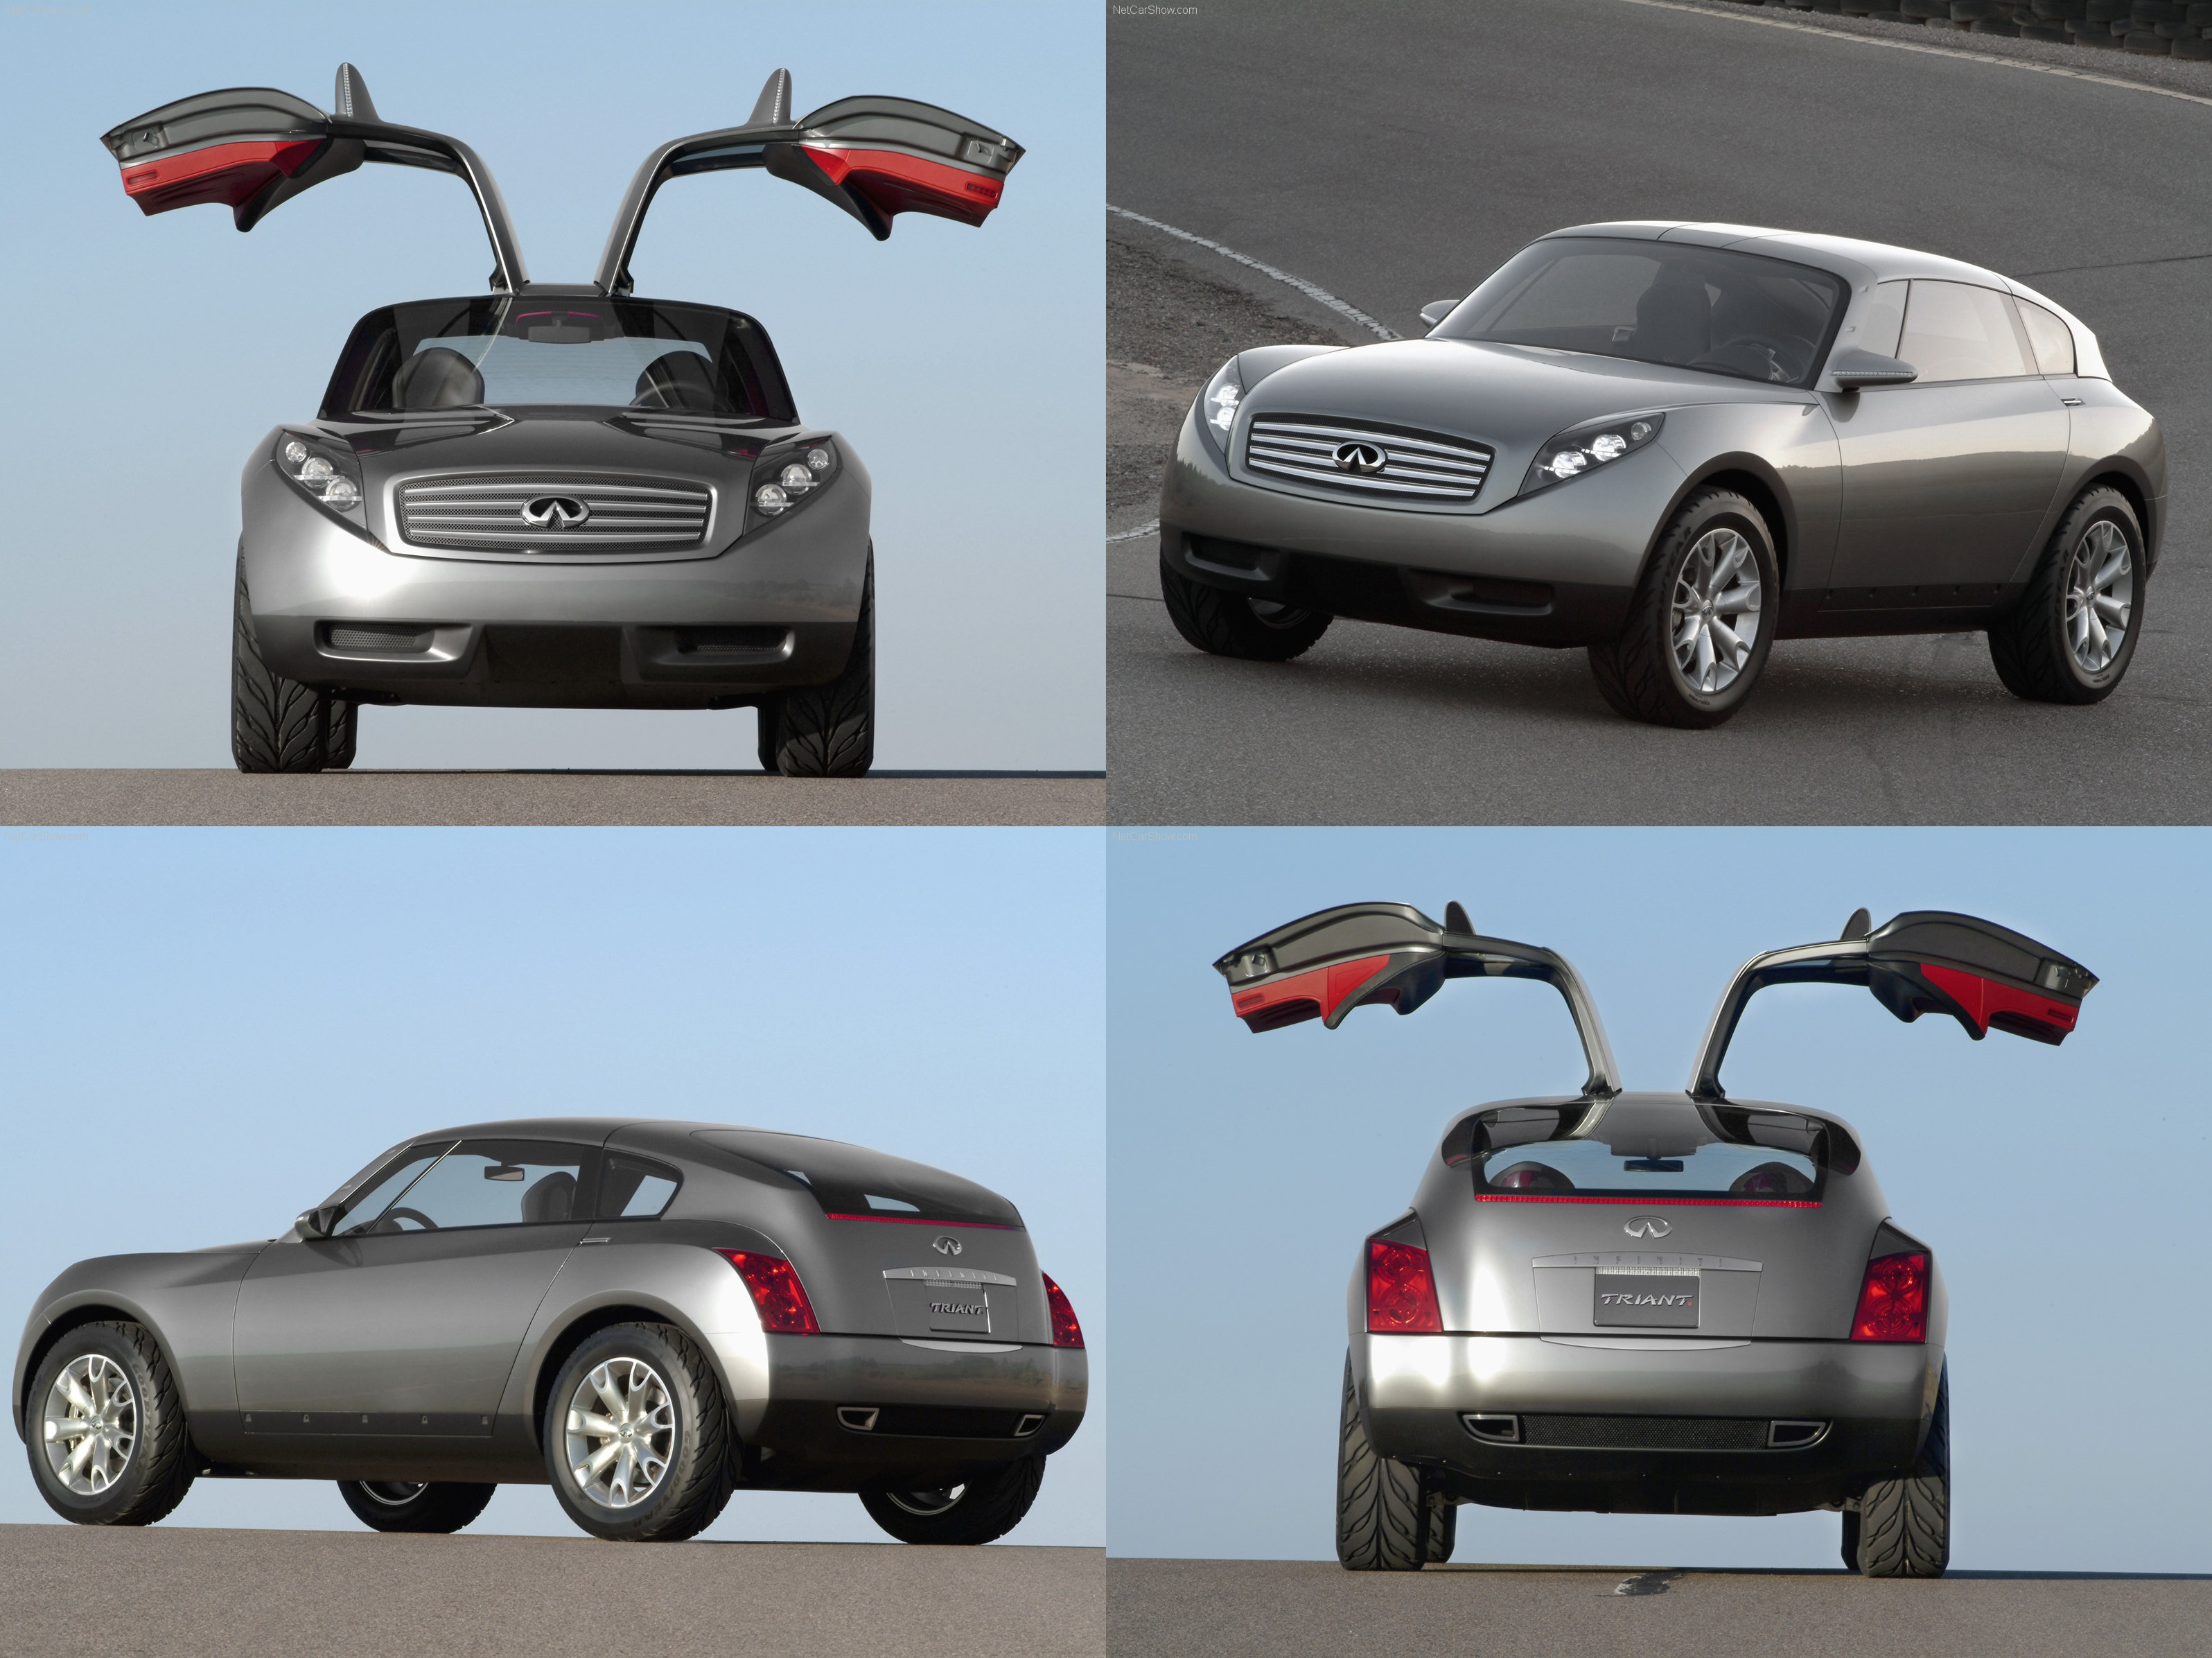 Infiniti-Triant_Concept_2003_1600x1200_wallpaper_05